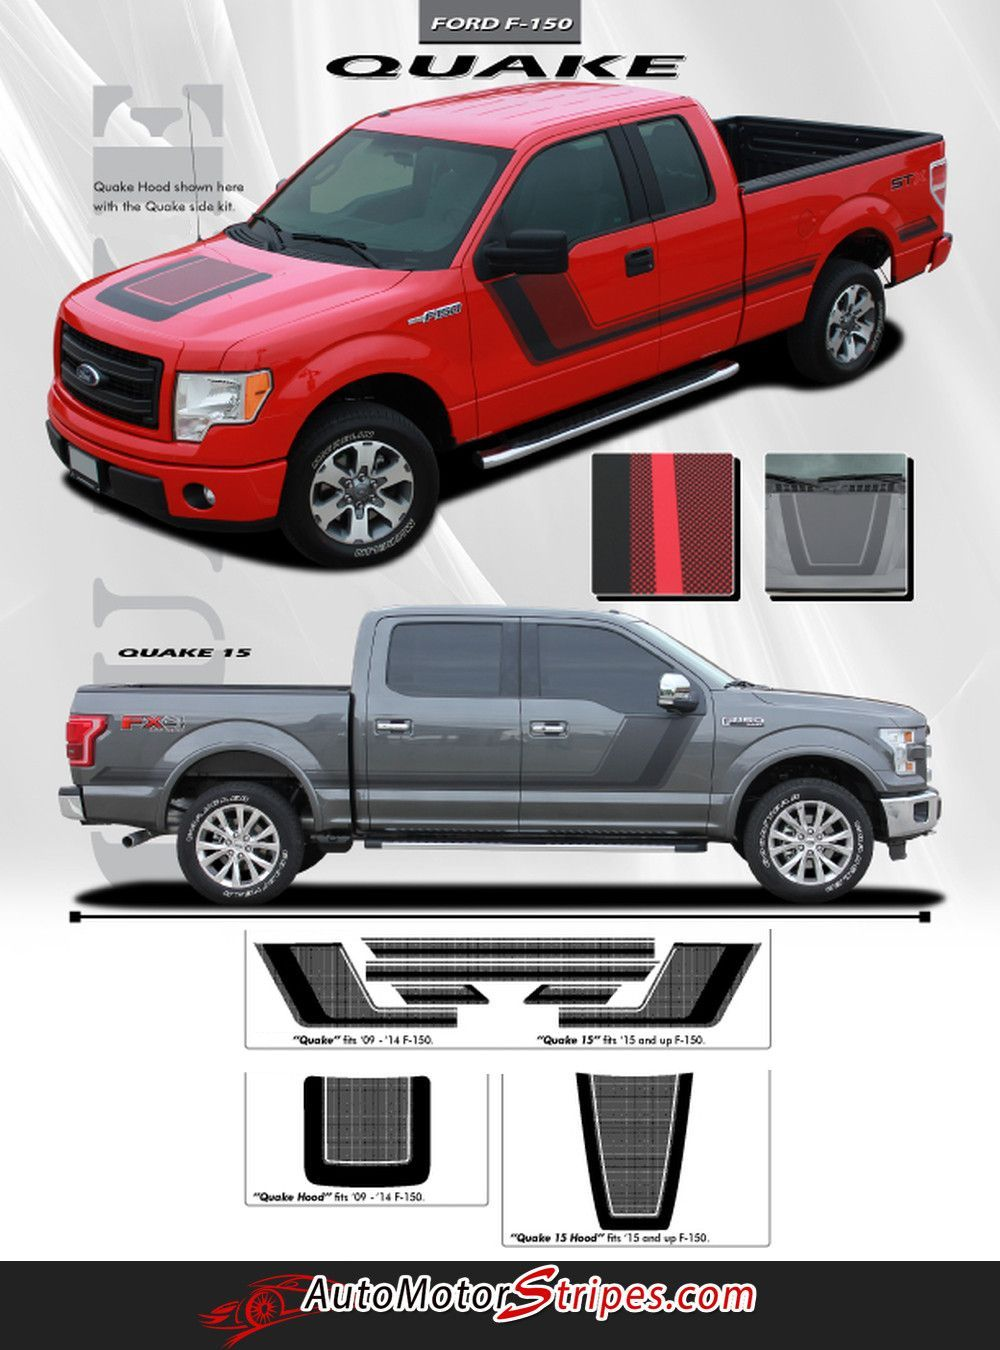 small resolution of vehicle specific style ford f 150 series truck quake combo hood and sides tremor fx style vinyl graphic stripe decals year fitment 2009 2010 2011 2012 2013